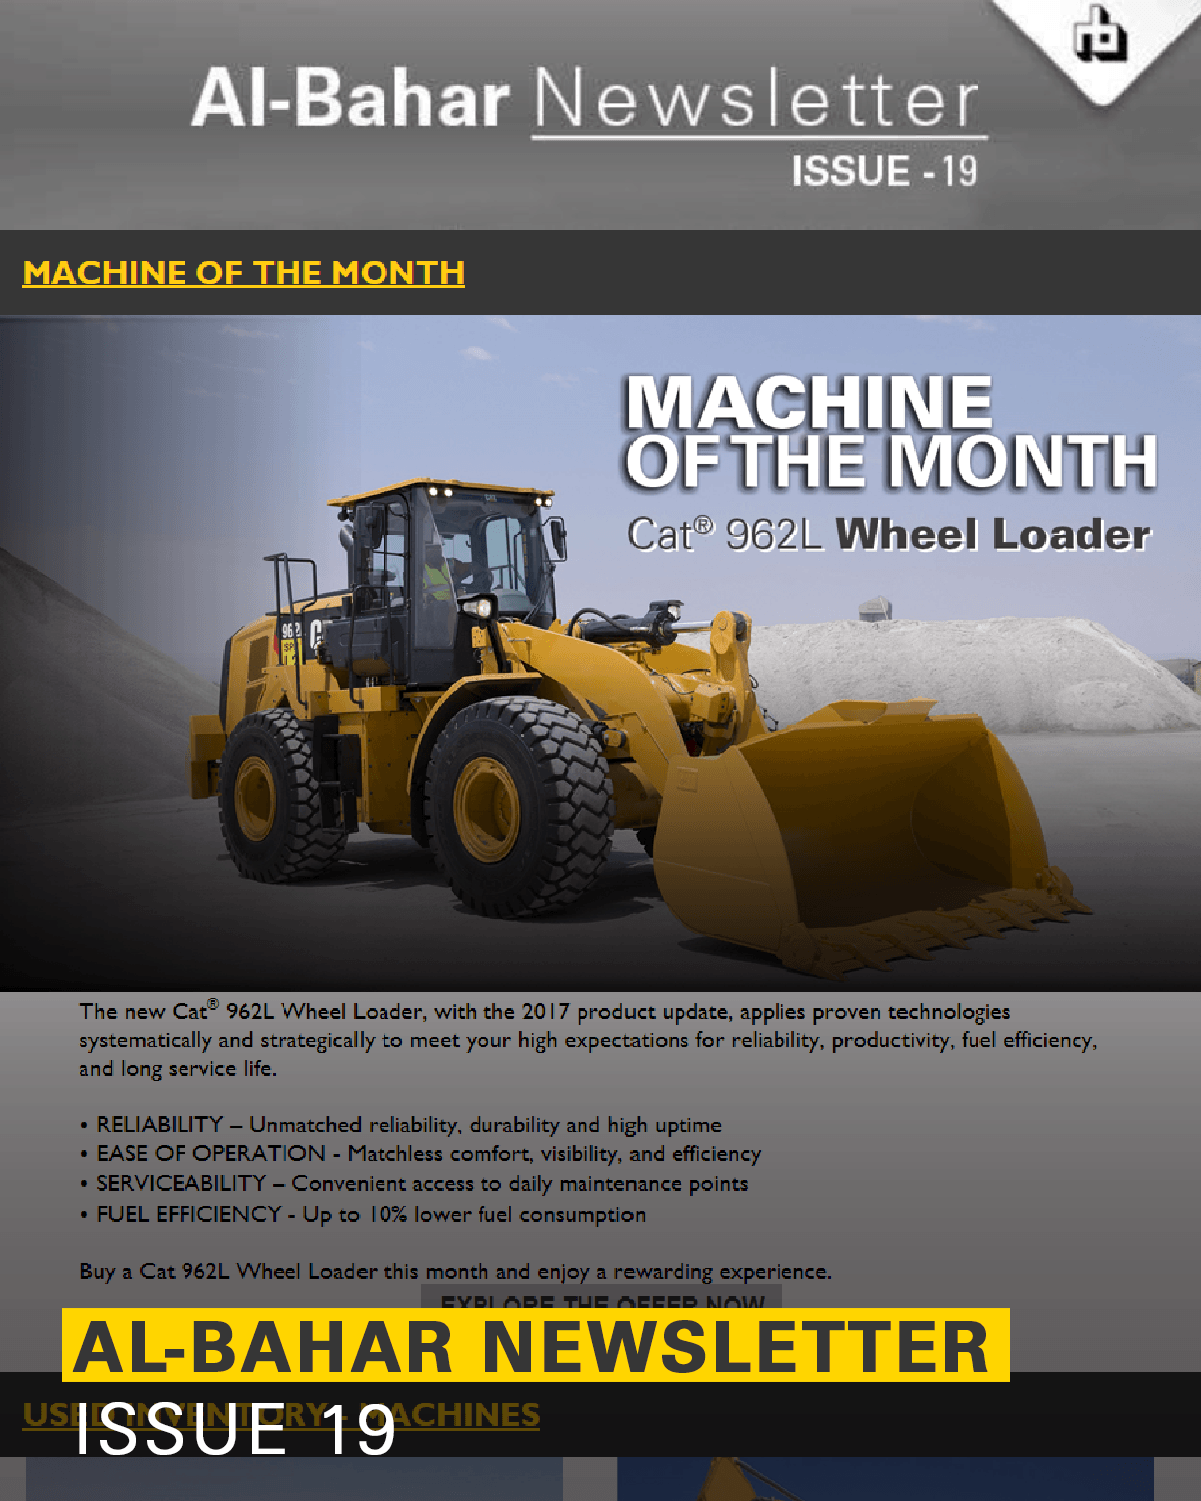 al-bahar-2018-newsletter-issue-19